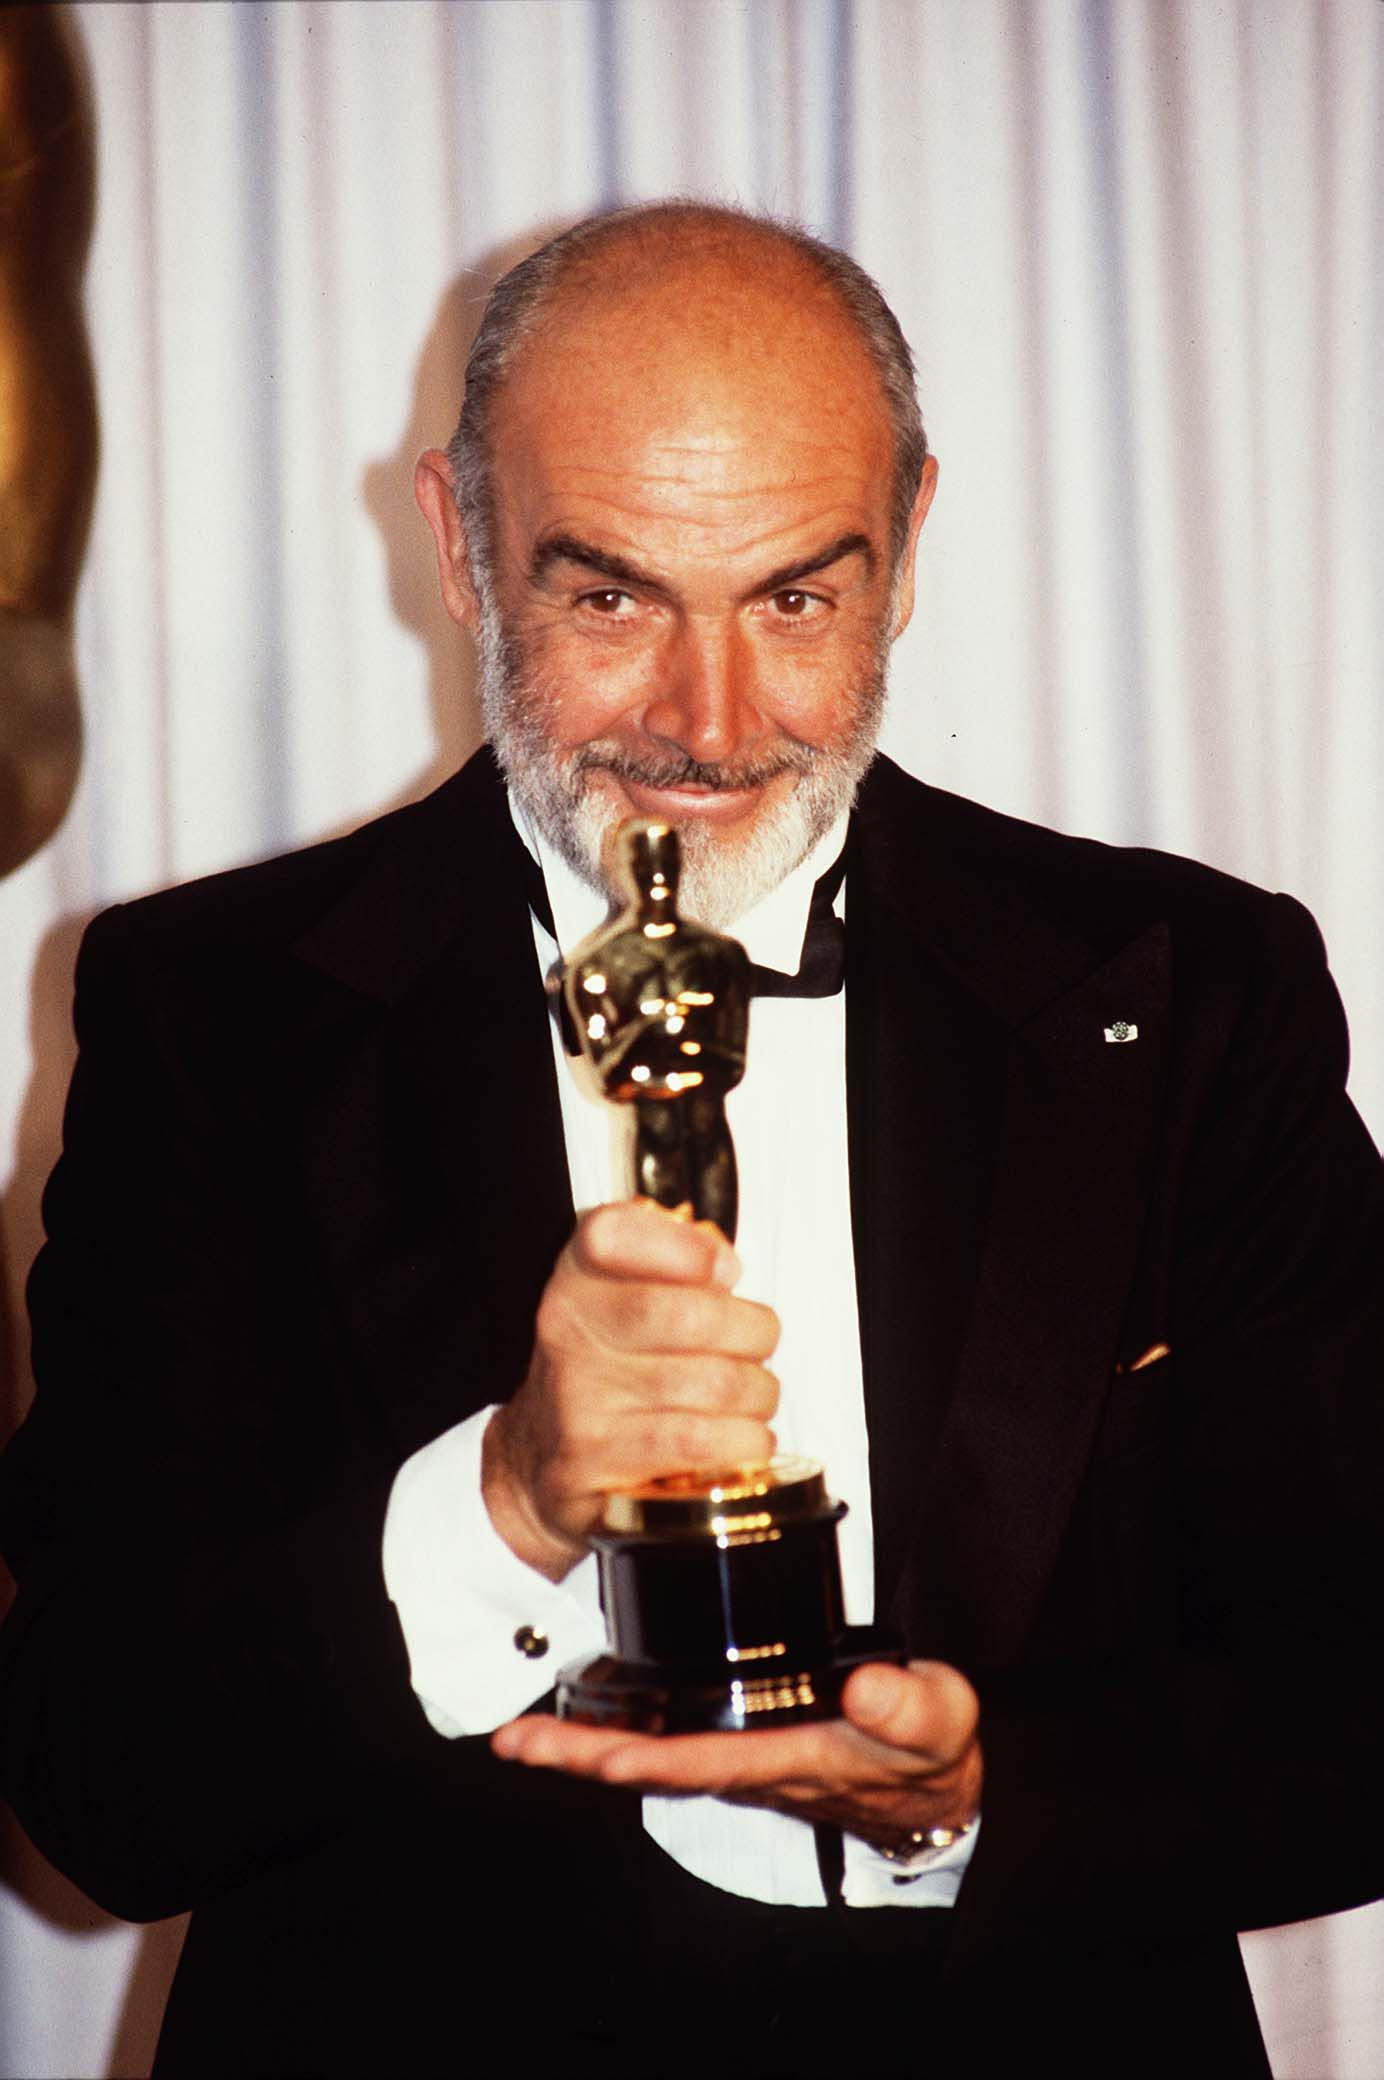 Veteran actor Sean Connery, the first actor to play James Bond, won Best Supporting Actor during the 60th Annual Academy Awards in 1988. | Photo: Getty Images